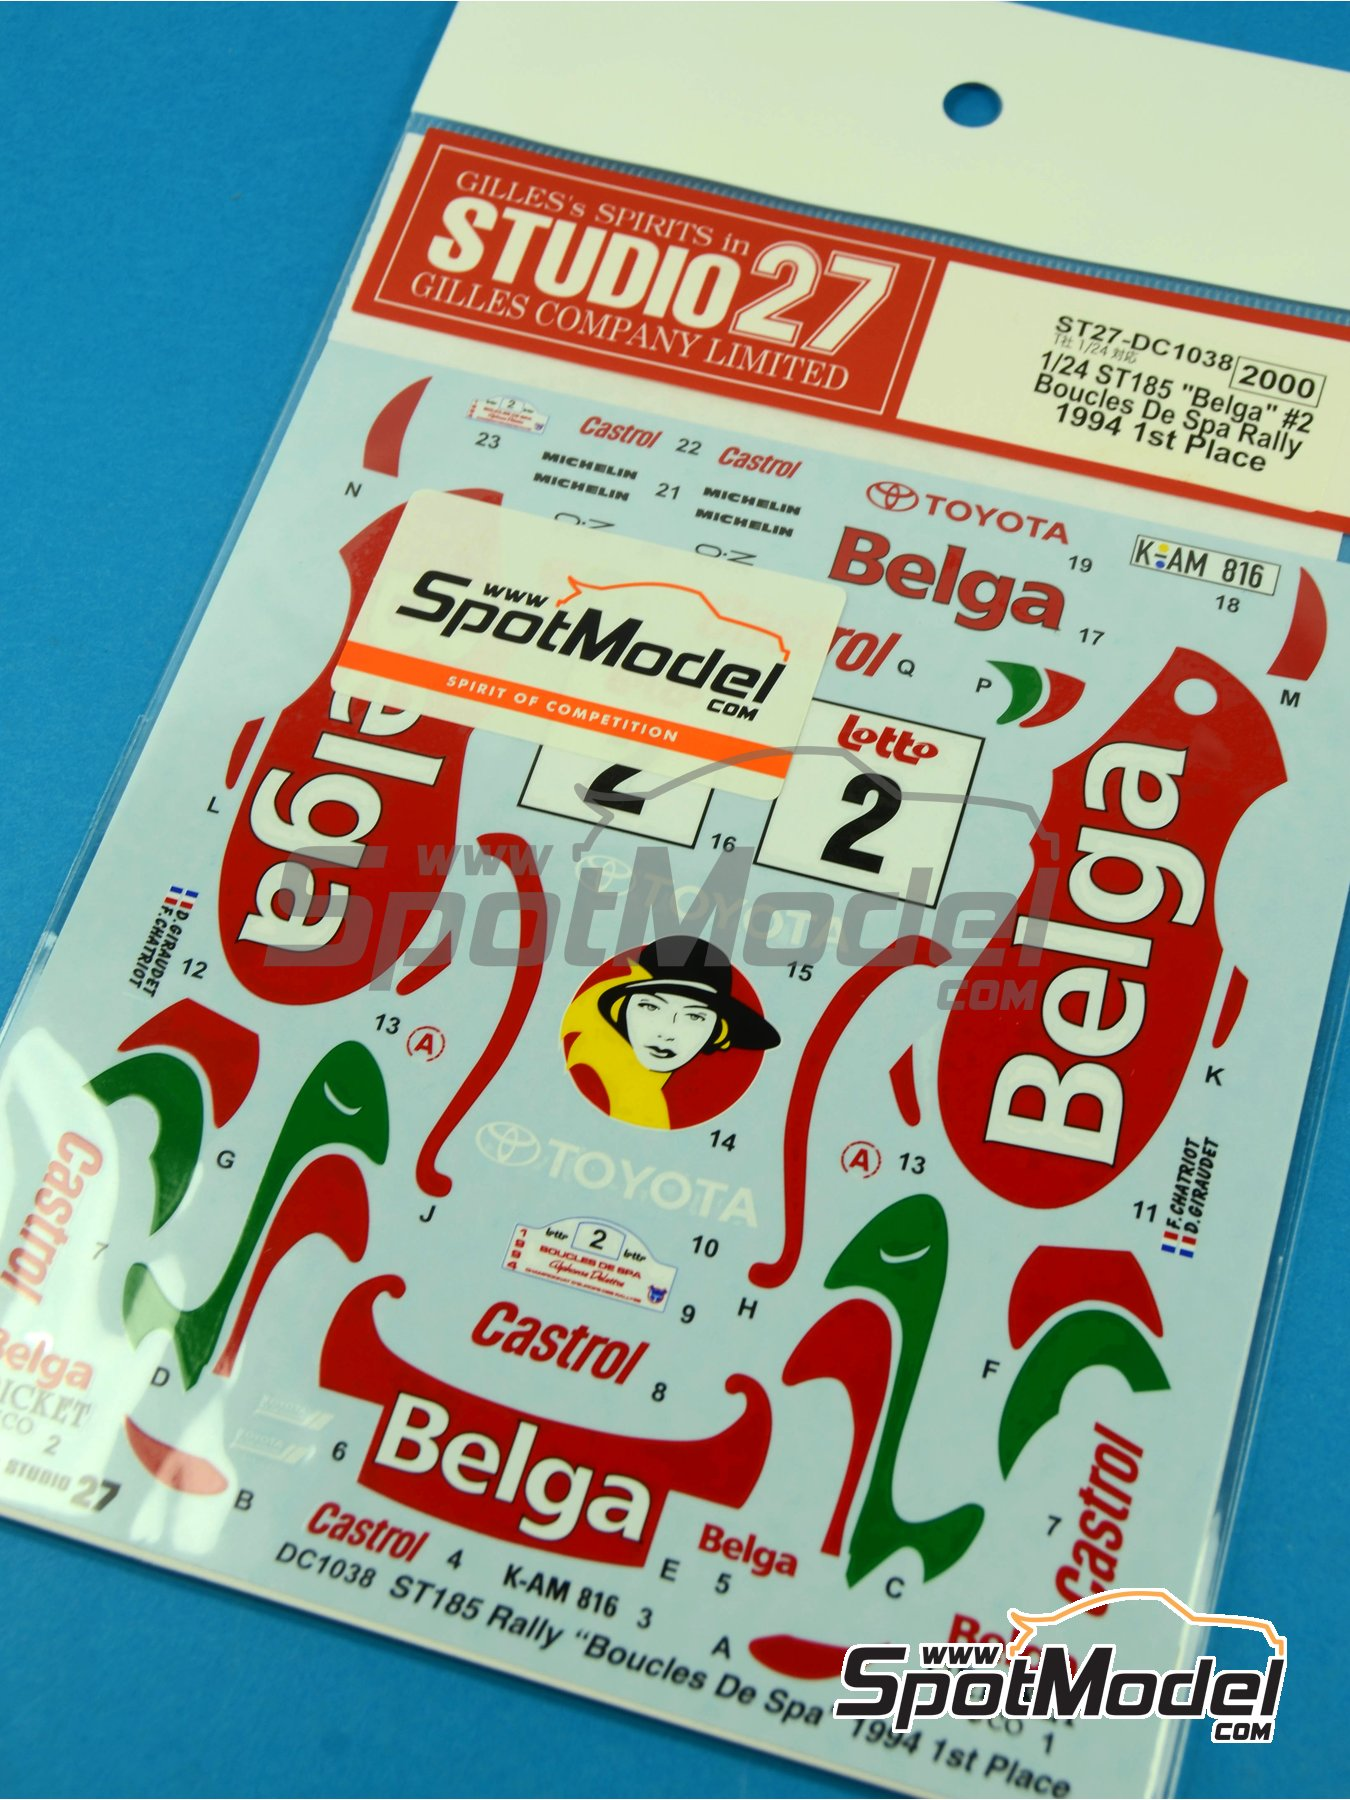 Toyota Celica GT-Four WRC Belga - Boucles de SPA 1994 | Marking / livery in 1/24 scale manufactured by Studio27 (ref.ST27-DC1038) image